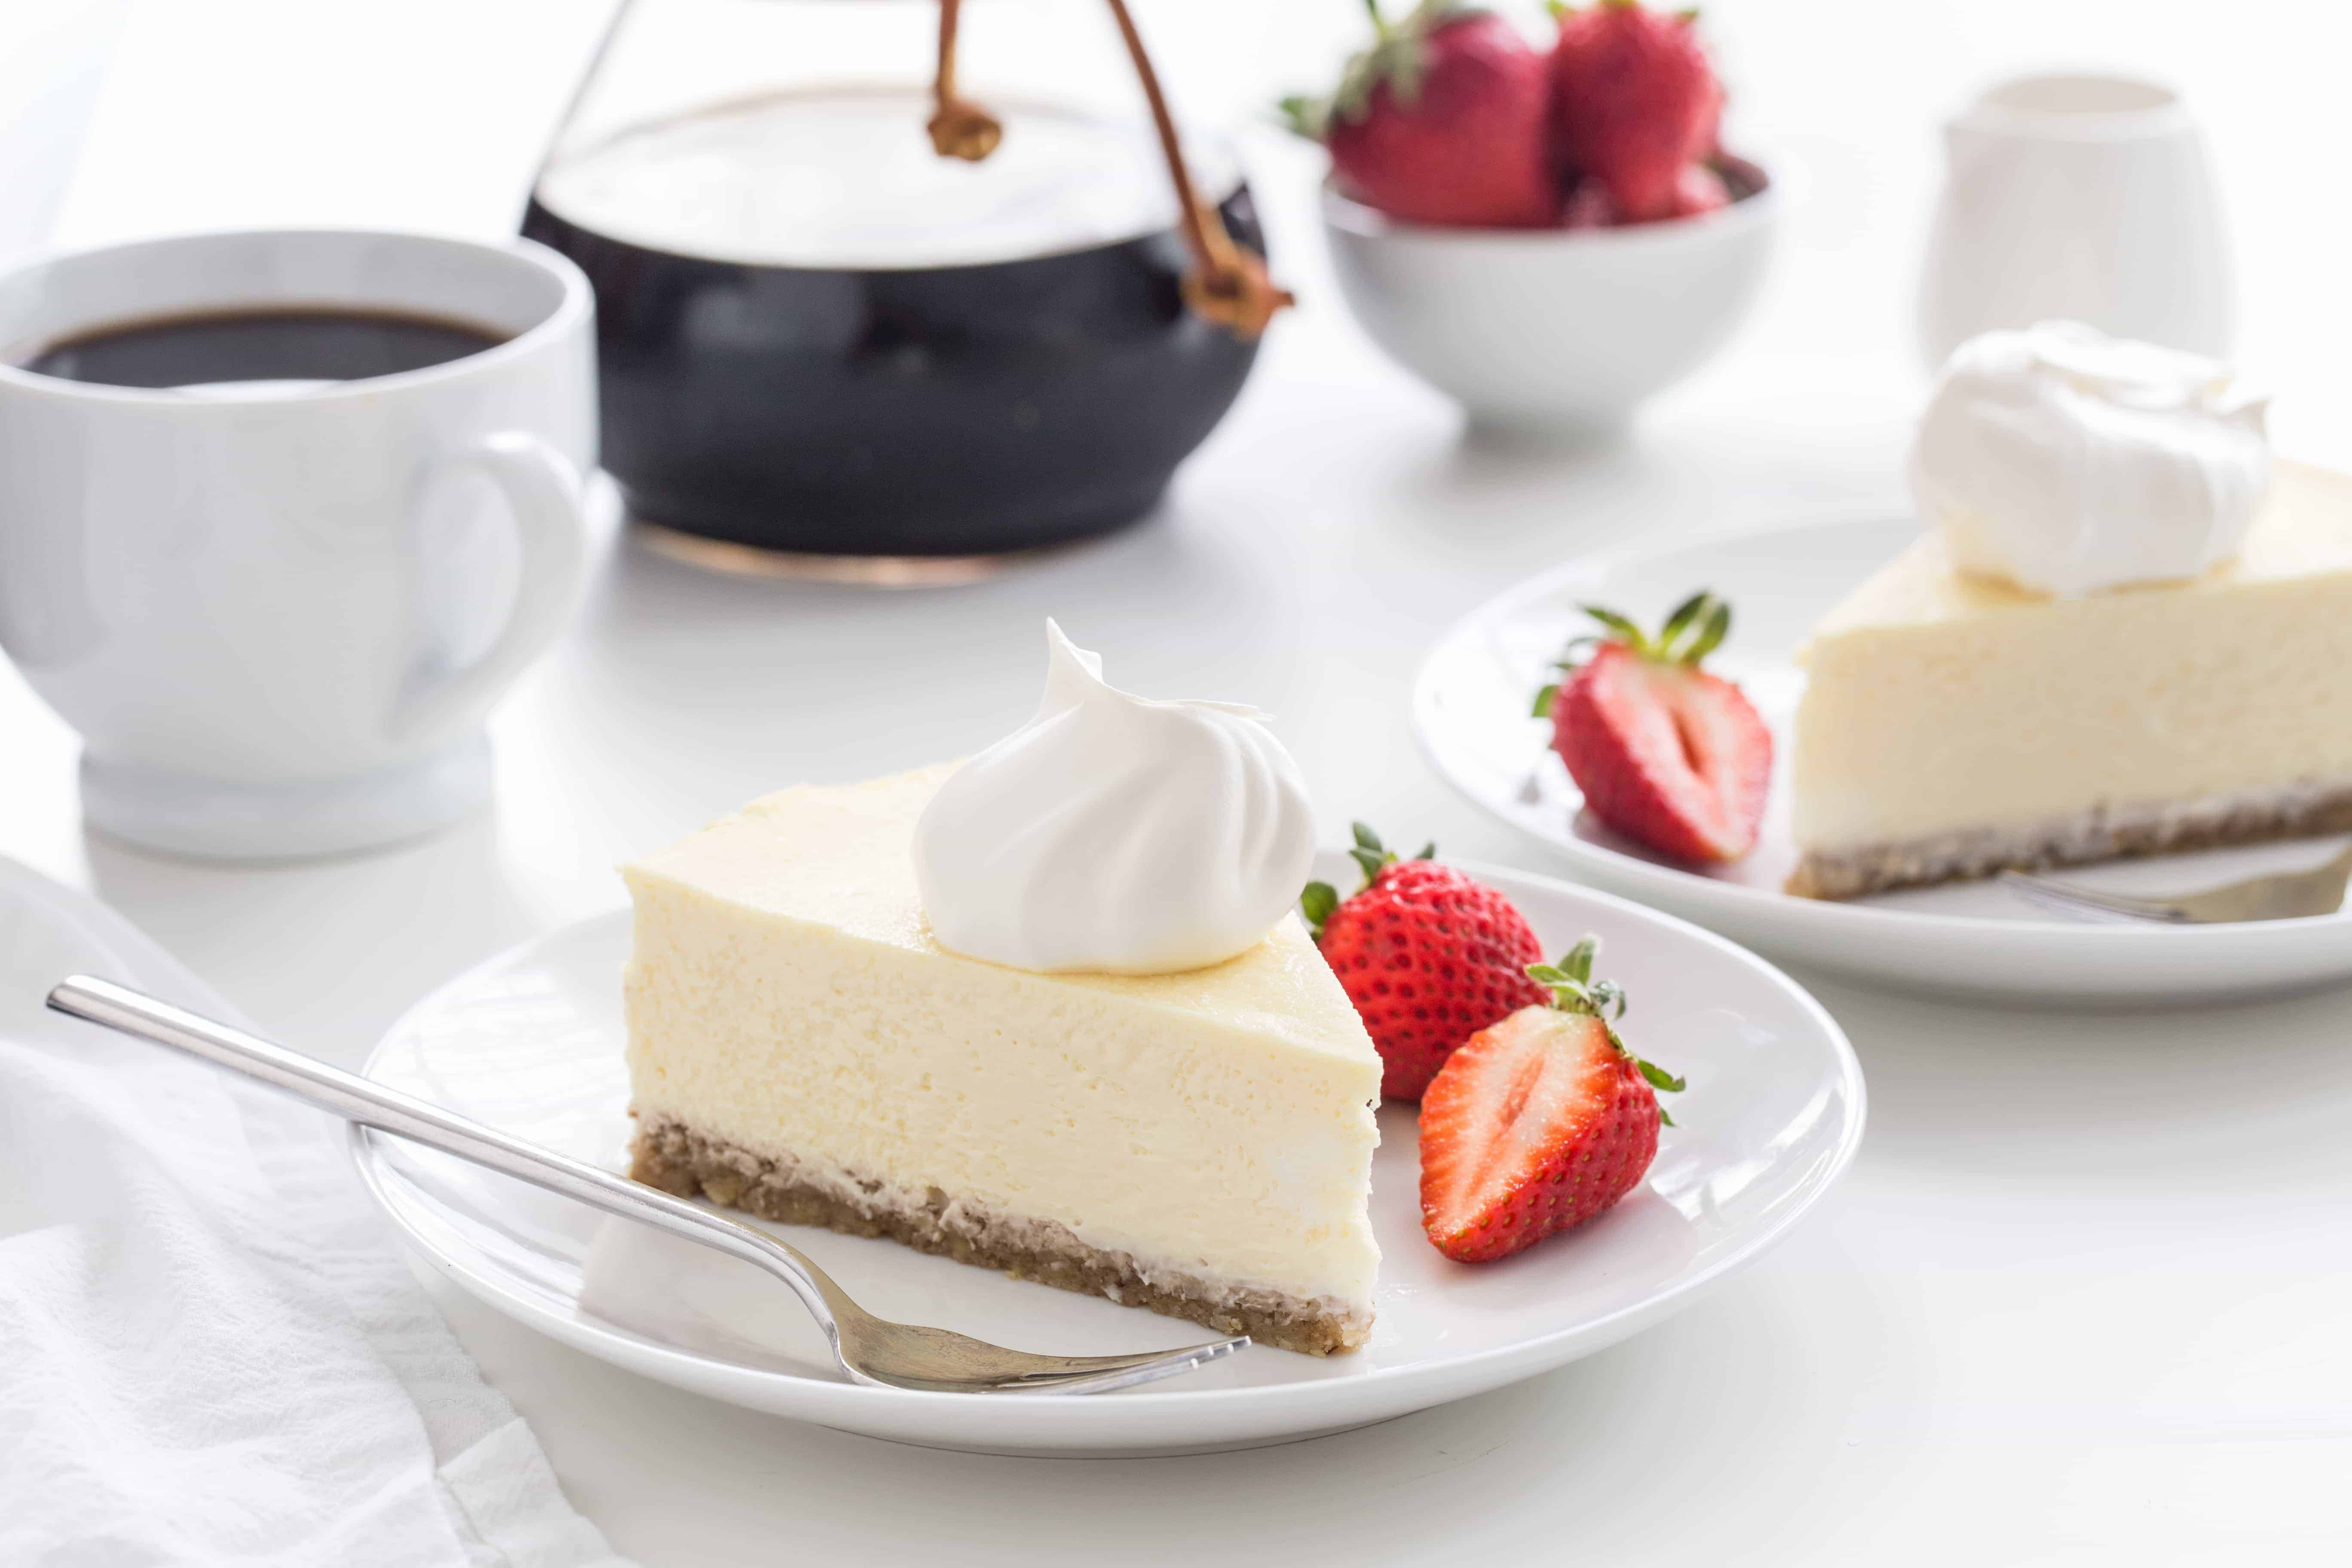 Low Carb Cheesecake is perfectly creamy and delicious without added sugar. The walnut crust makes it extra special.